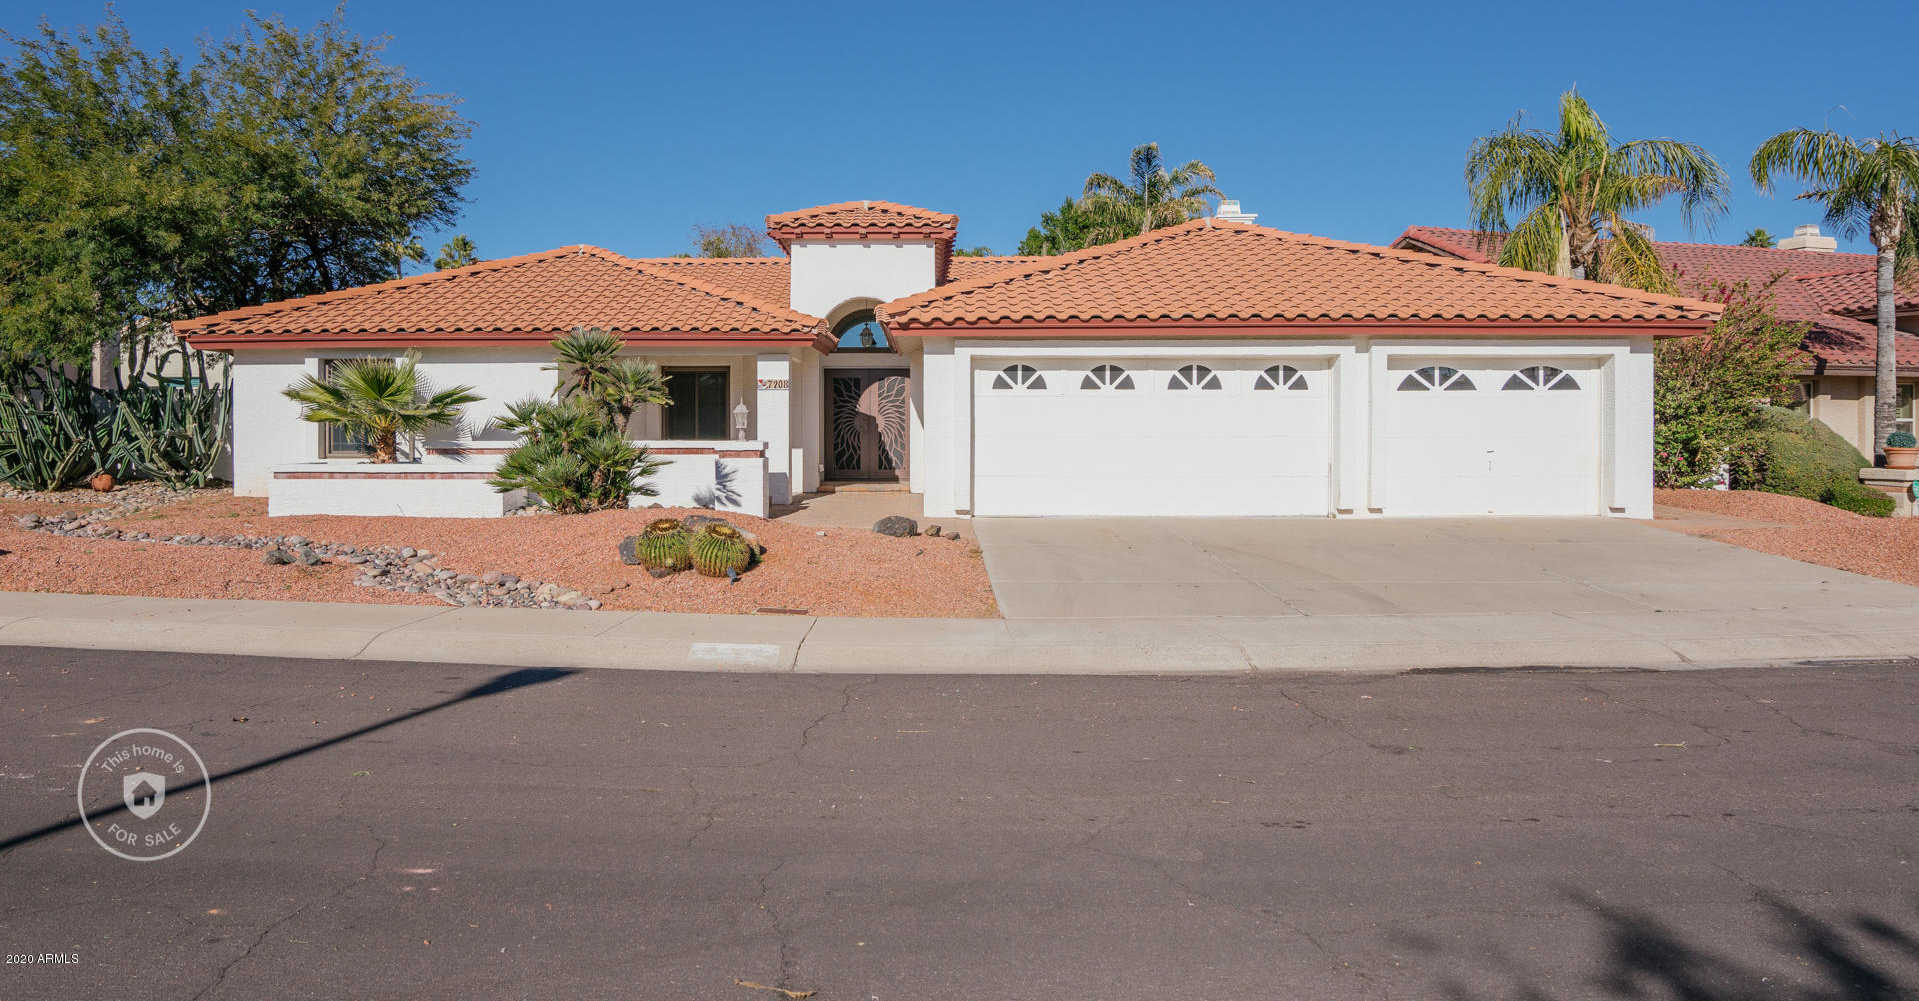 $374,000 - 4Br/2Ba - Home for Sale in Arrowhead Oasis Amd Lt 1-88 Tr A Drainage Easmt, Glendale